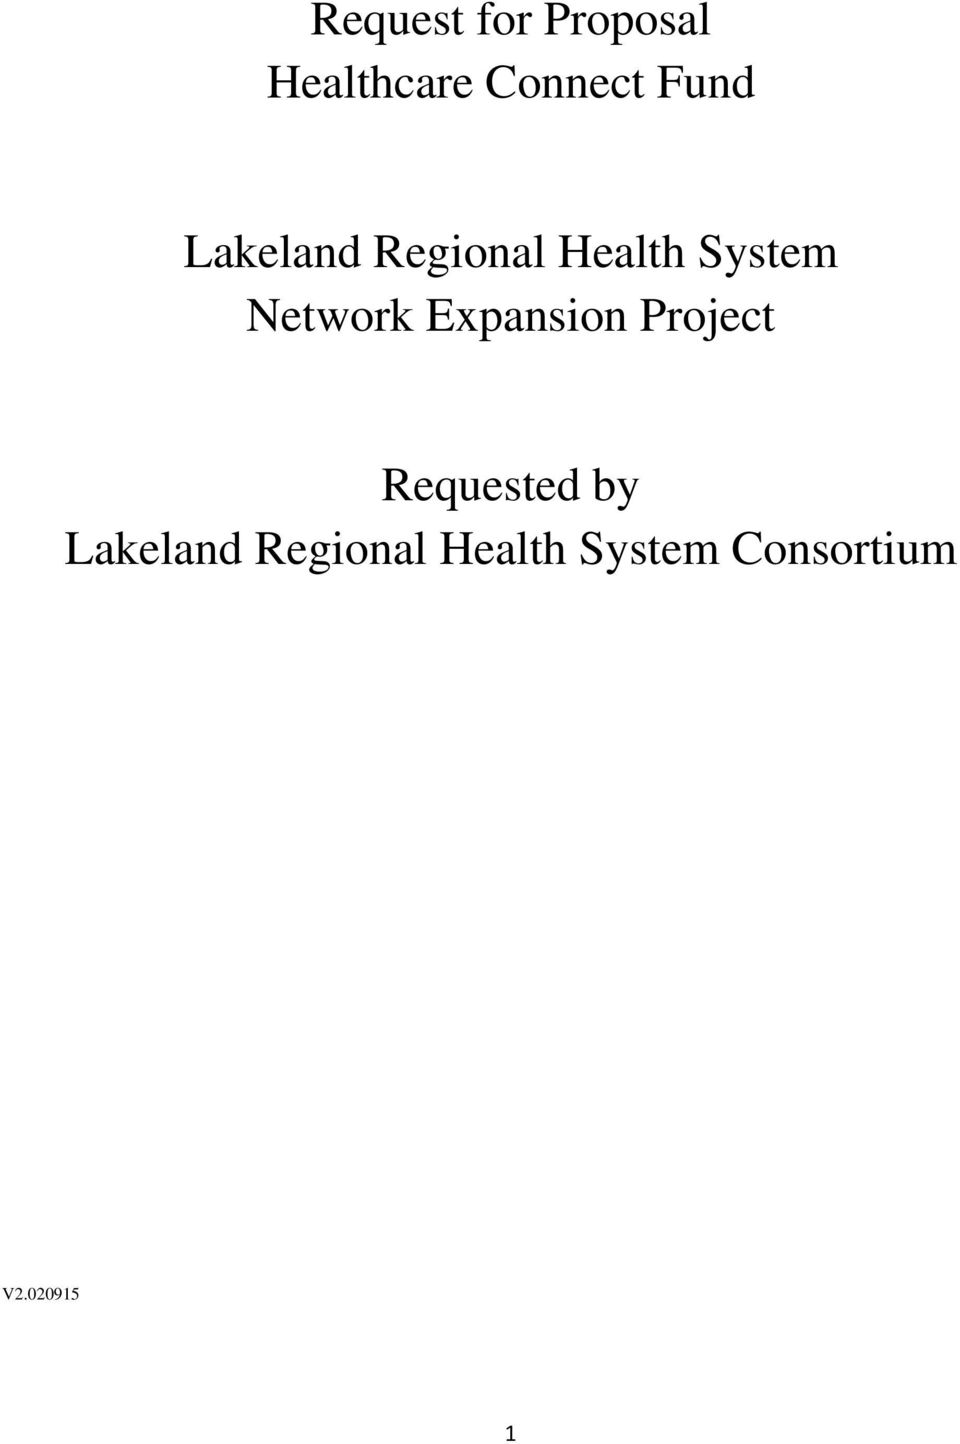 Request for Proposal Healthcare Connect Fund  Lakeland Regional